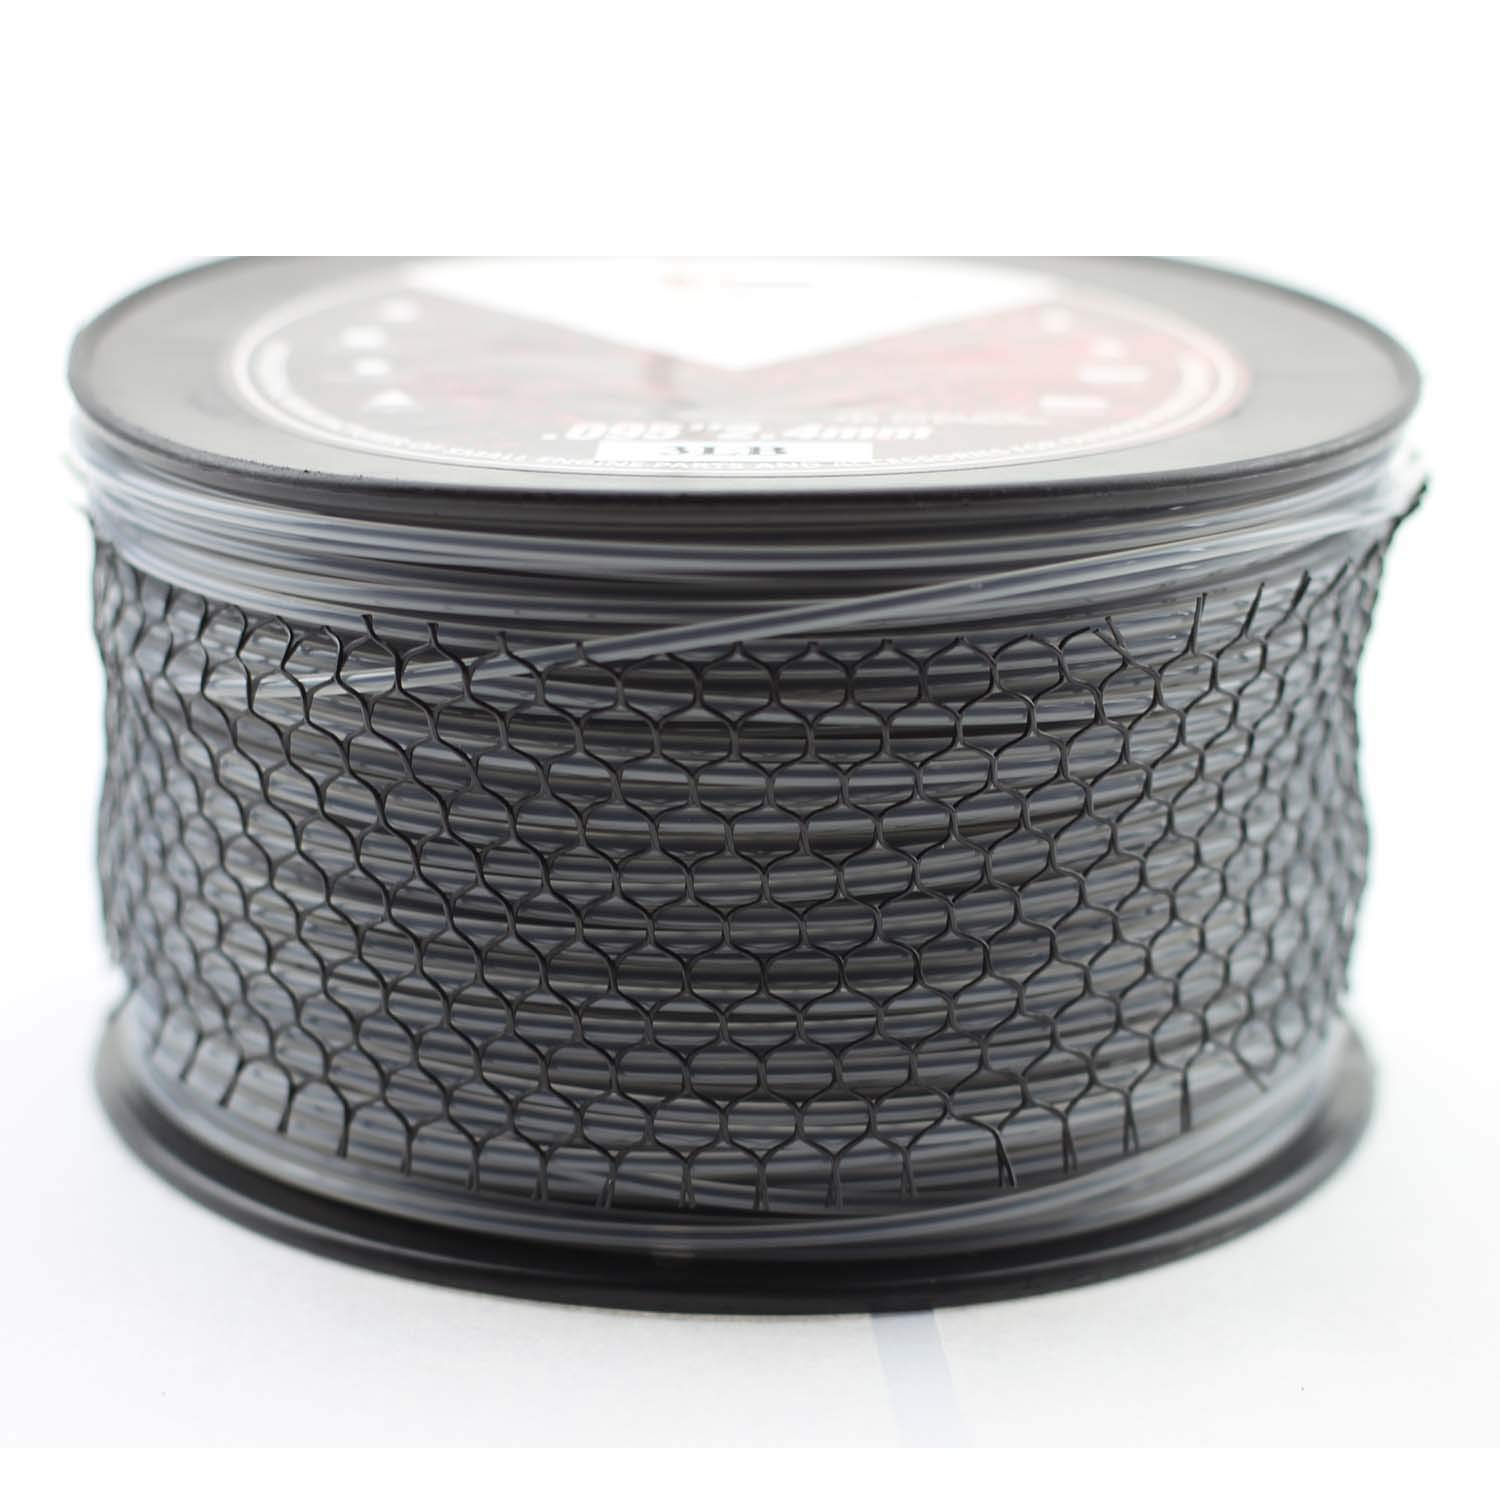 Outdoors & Spares Gatorline Heavy-Duty Professional Magnum 3-Pound Coil of .095-Inch-by-787-Foot Round String Trimmer Line